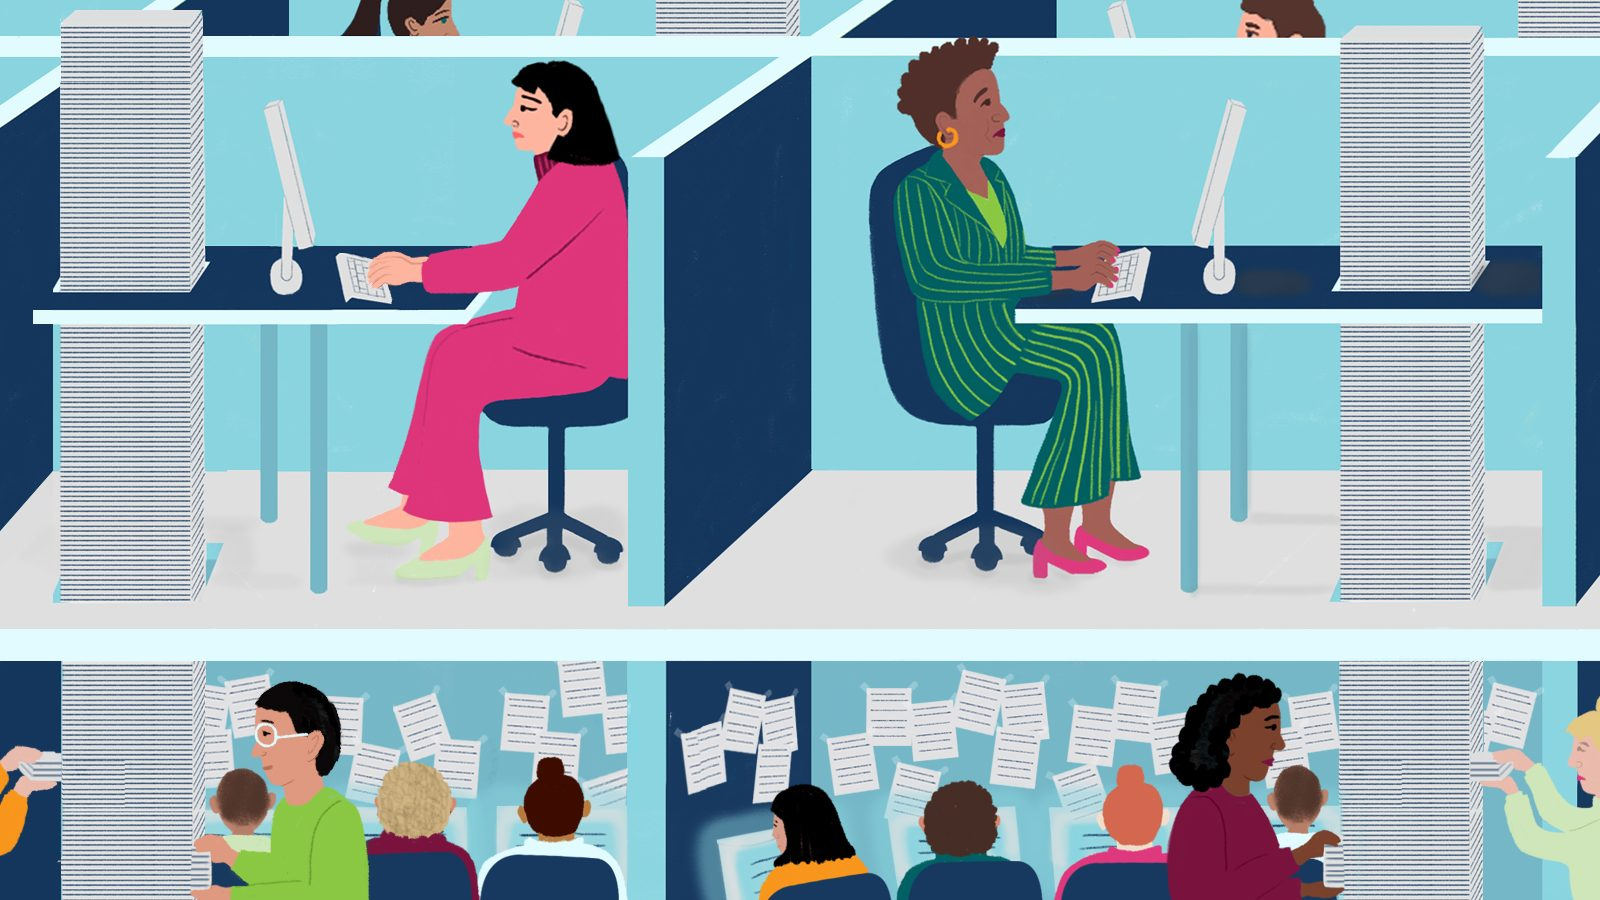 Illustration by Sophie Berg of workers in cubicles with stacks of papers on their desks.